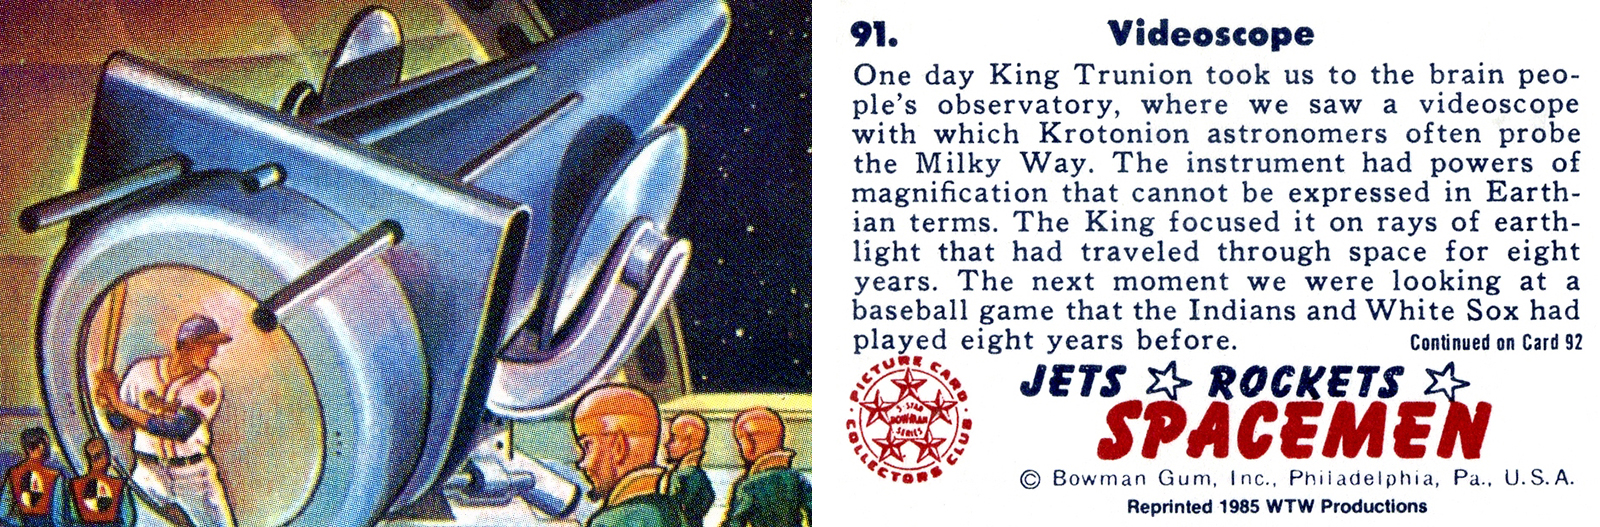 In one of the 1951 Bowman trading card sets, Jets, Rockets, Spacemen, visitors from Earth watch a baseball game beamed from Cleveland years earlier via alien technology. (AUTHOR'S COLLECTION)